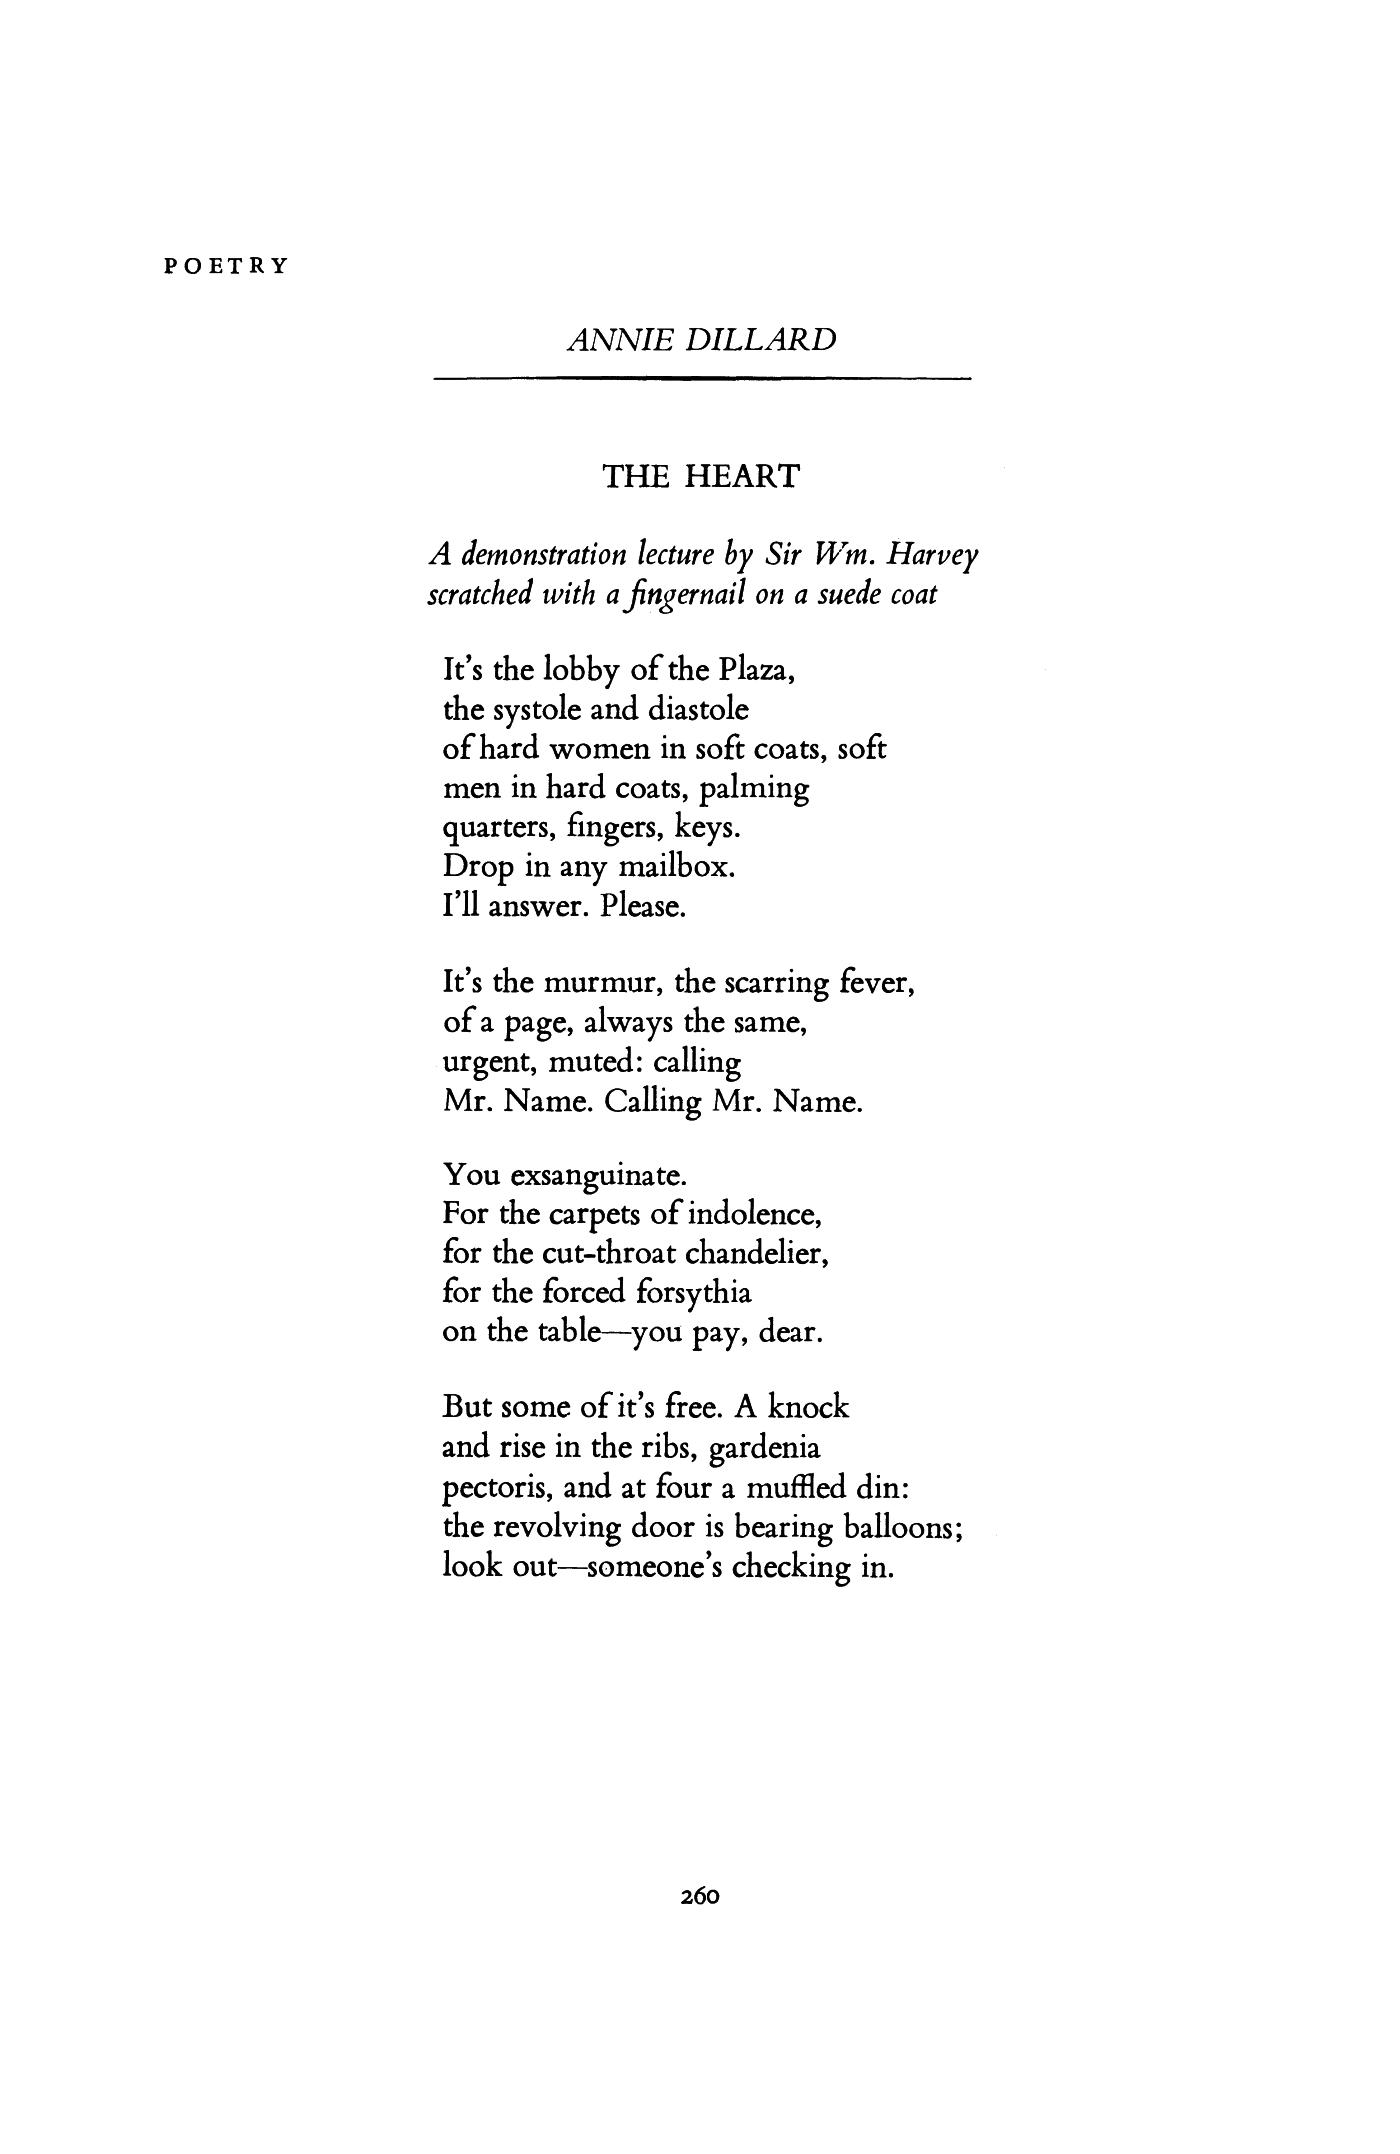 If I Can Stop One Heart From Breaking, - Poem by Emily Dickinson